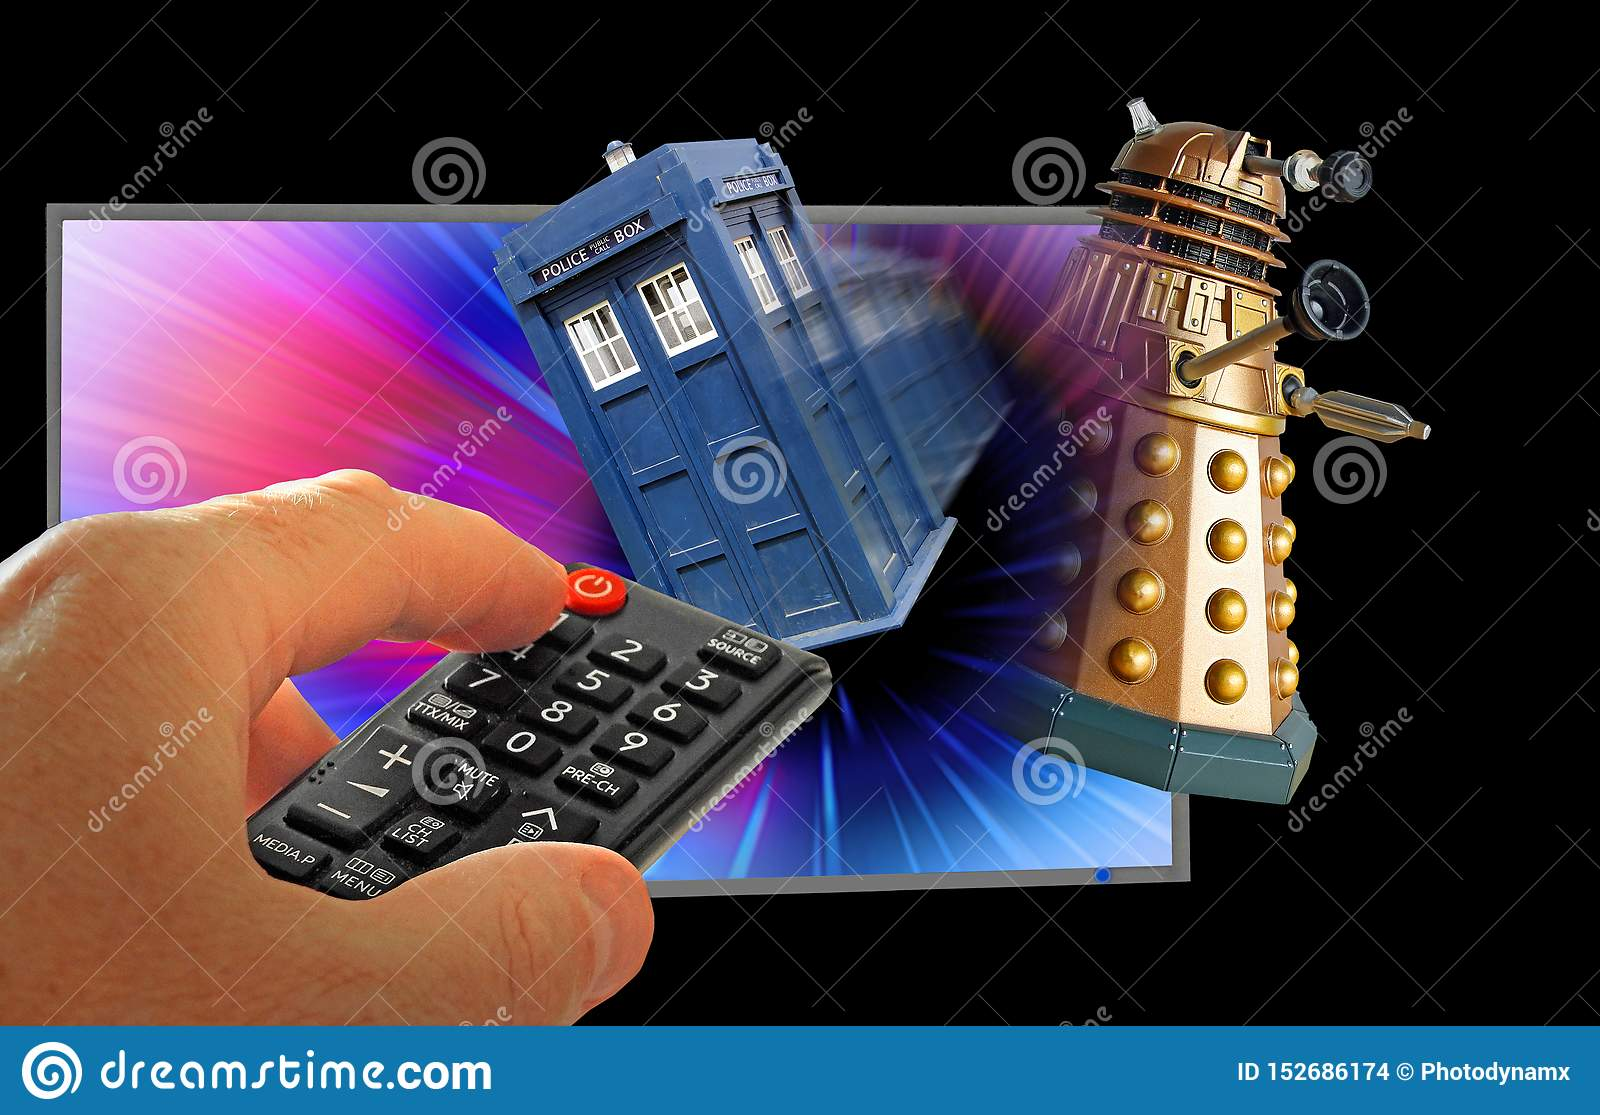 Doctor who tardis chase dalek through space television show remote control hand